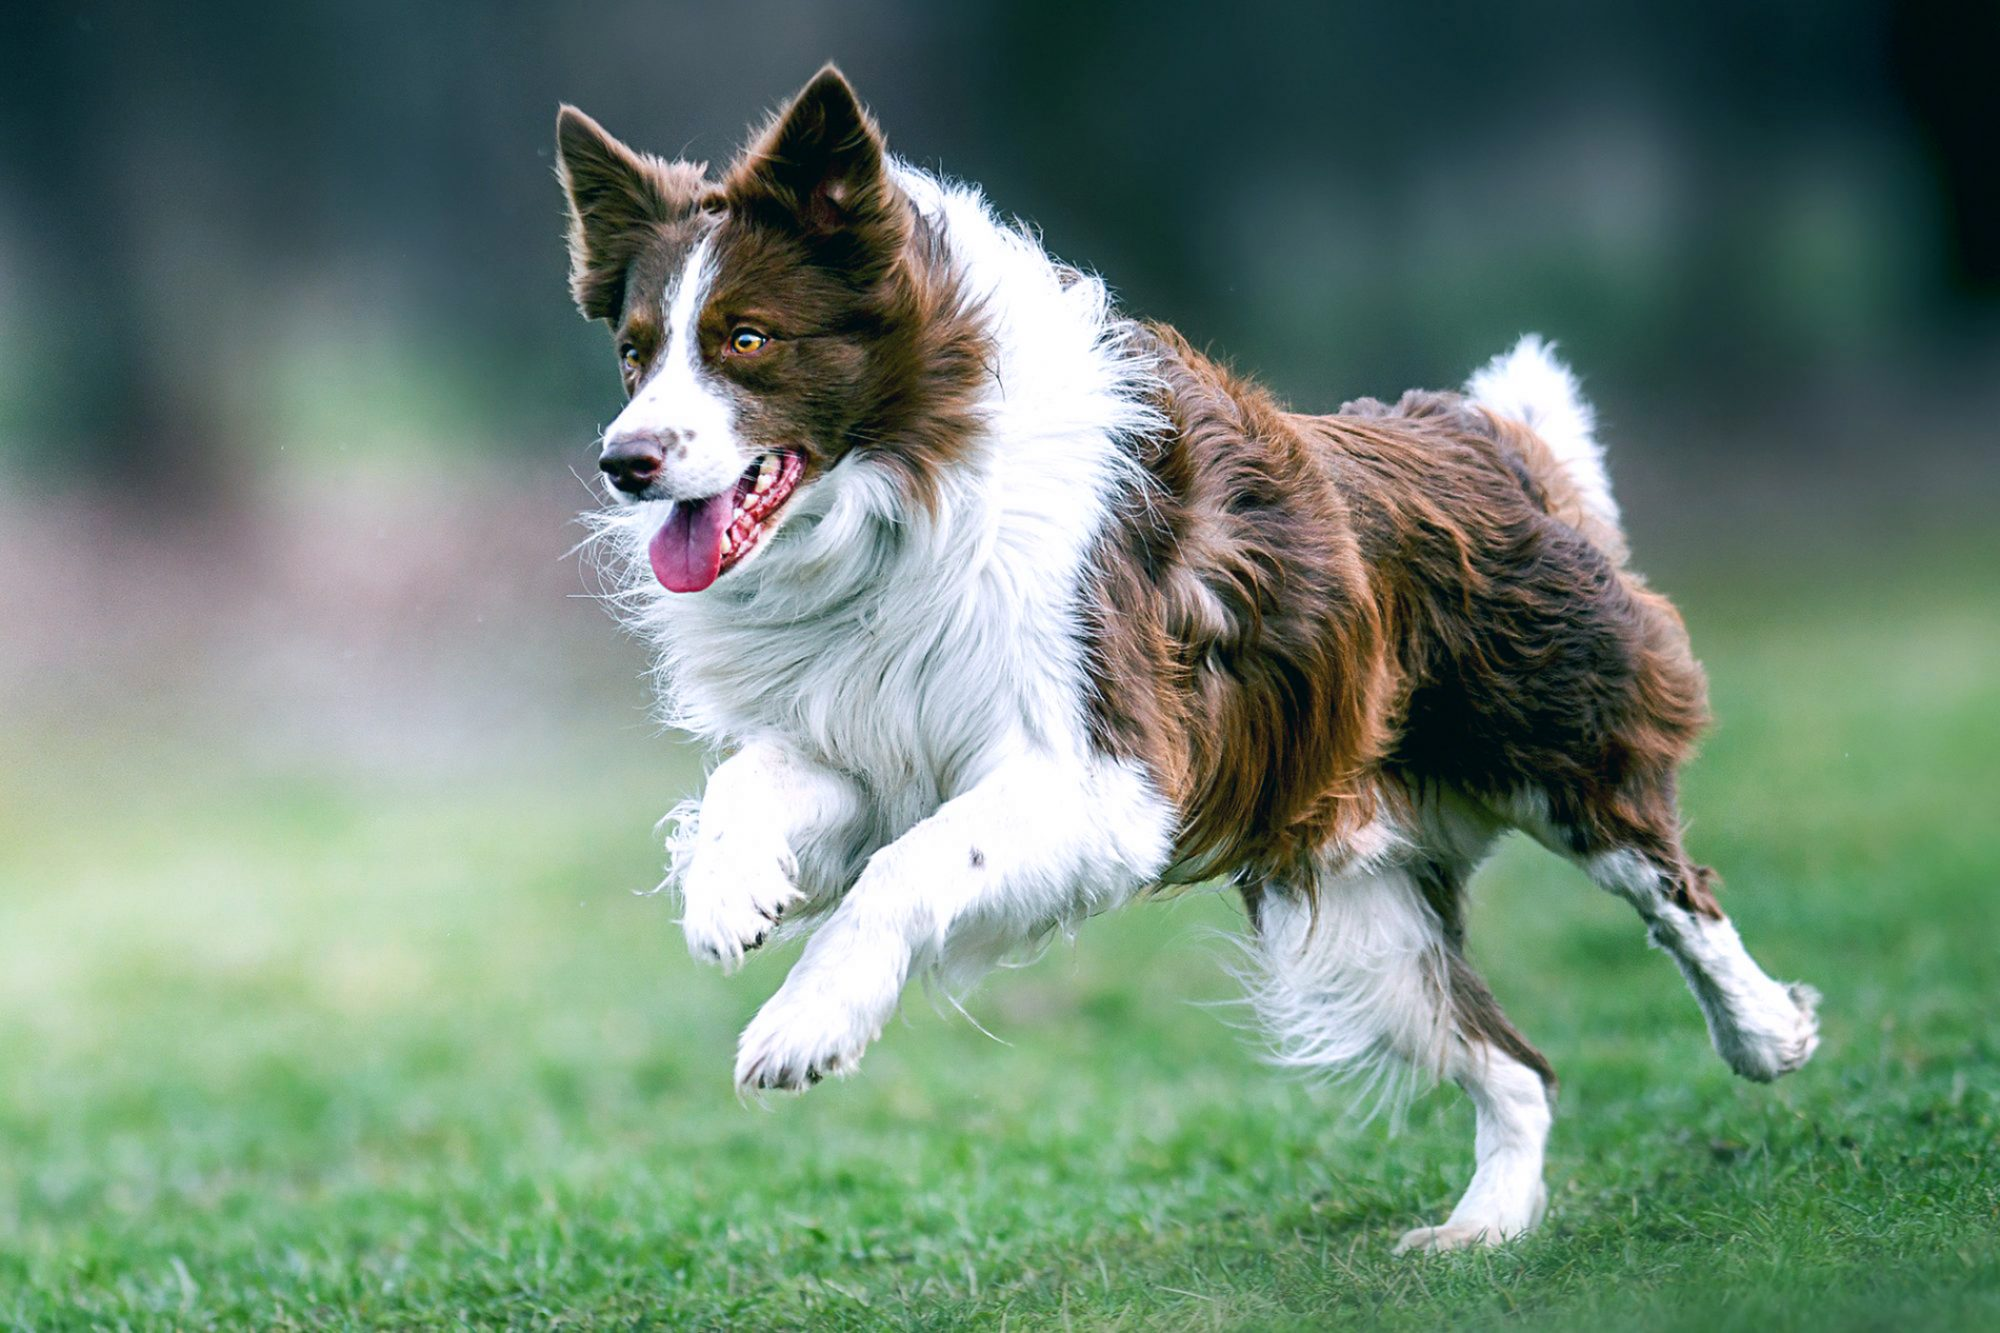 Brown and white border collie running